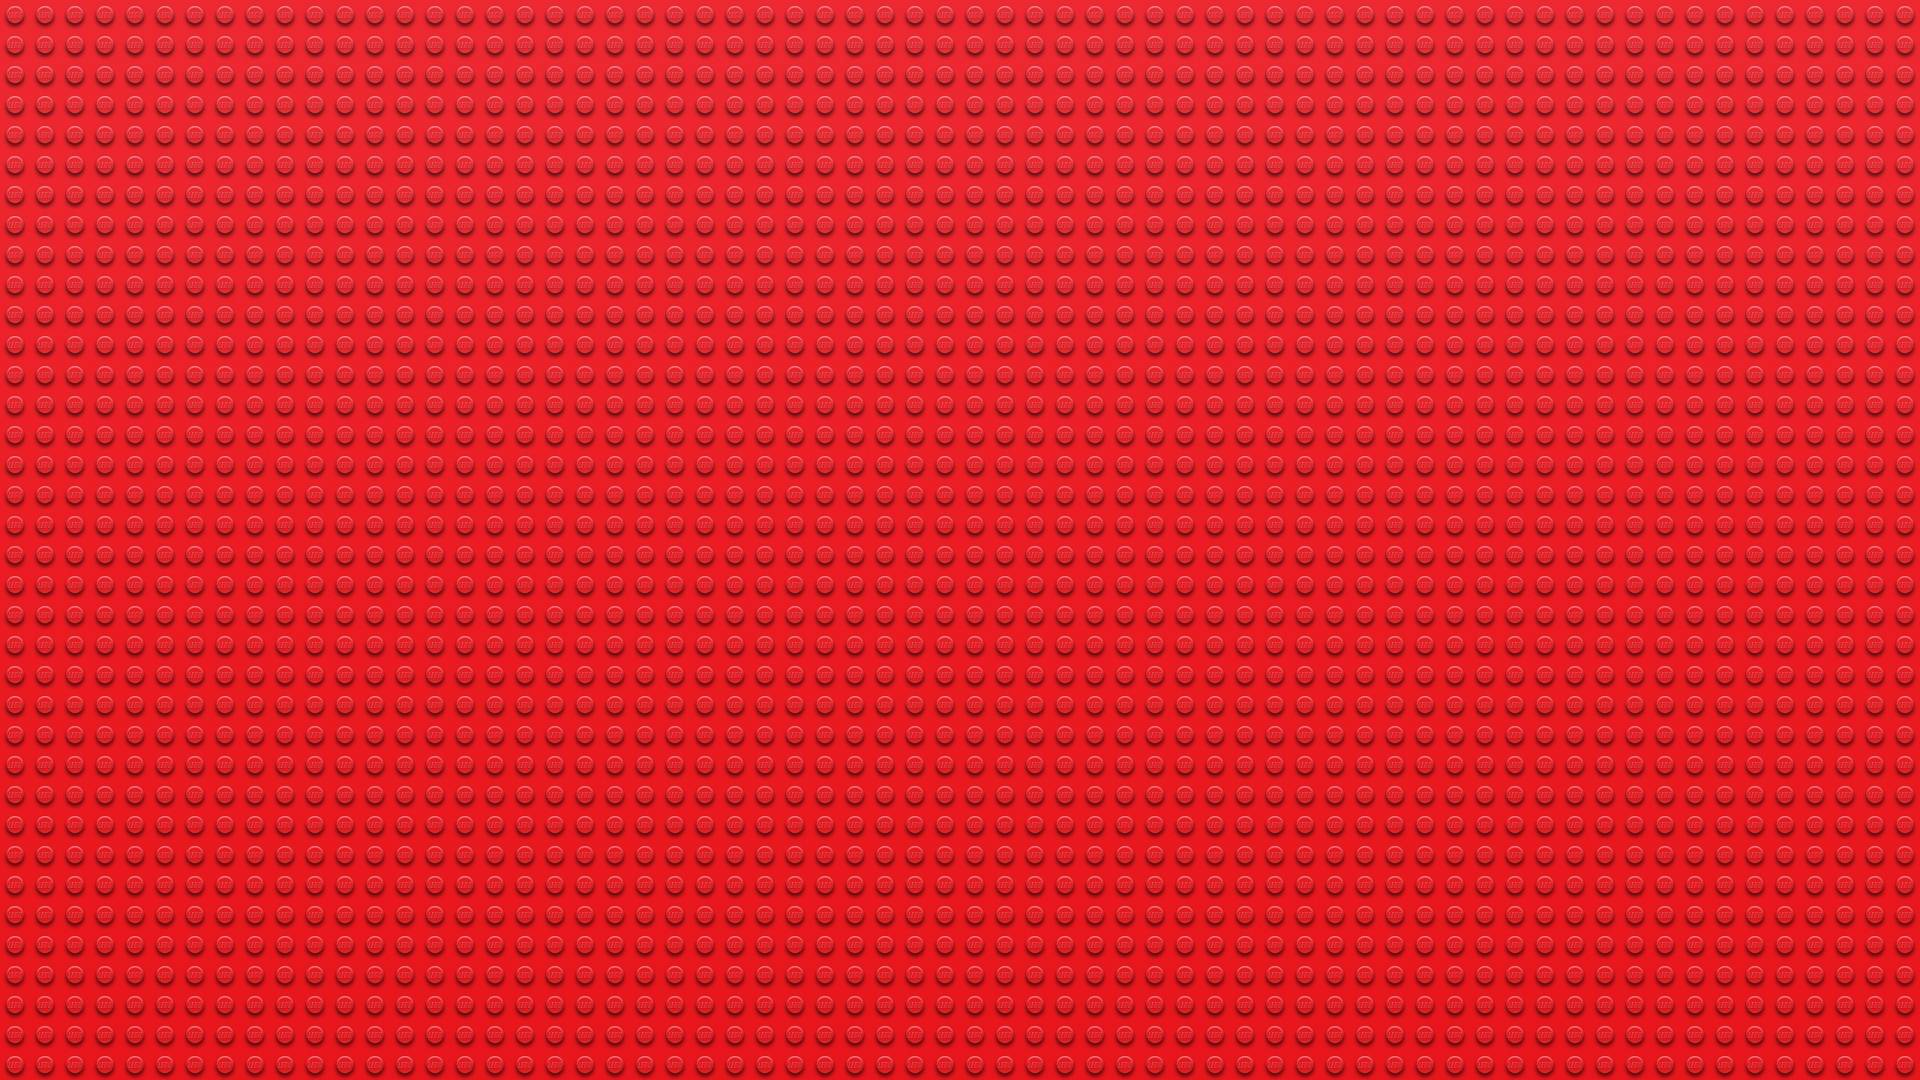 Lego Wallpapers Wallpaper Cave